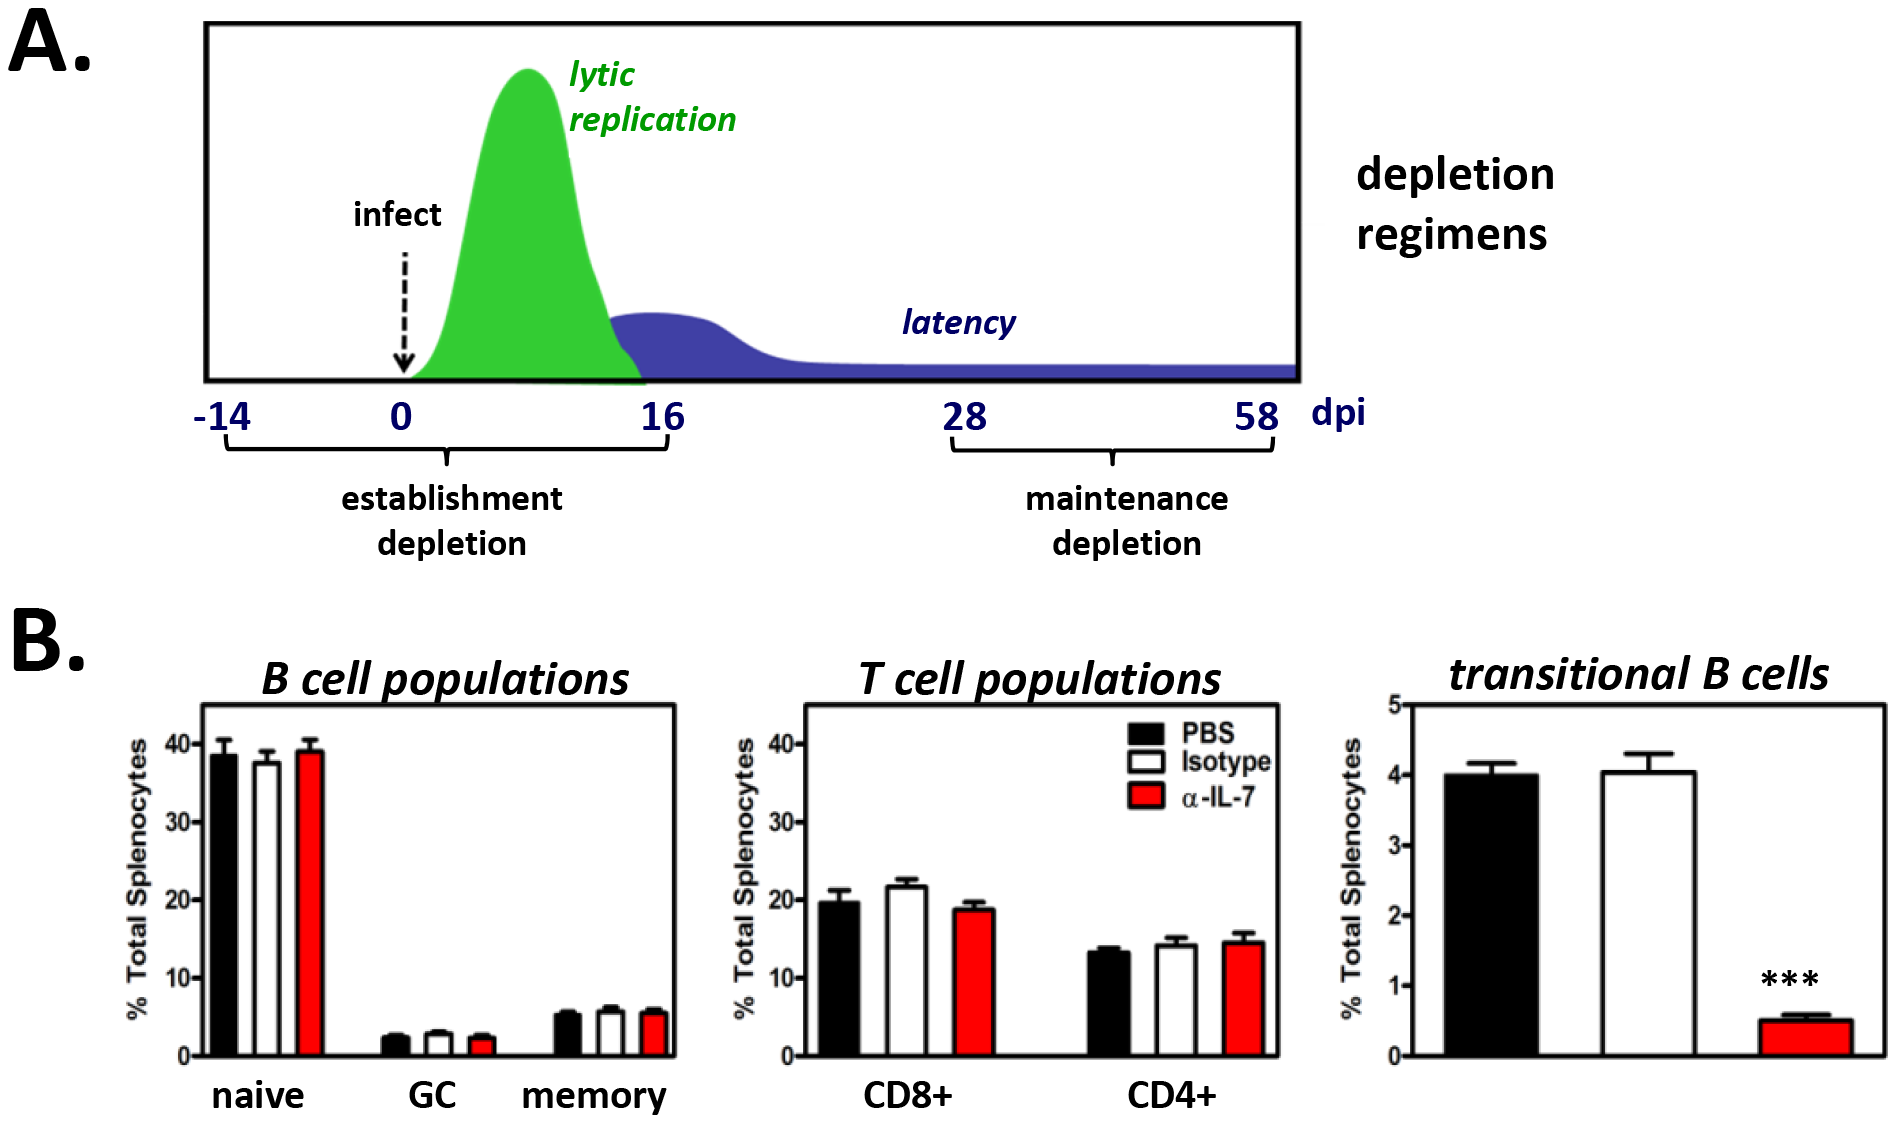 Short-term <i>in vivo</i> anti-IL-7 treatment results in depletion of developing B cells but does not alter mature B cell or mature T cell subsets.